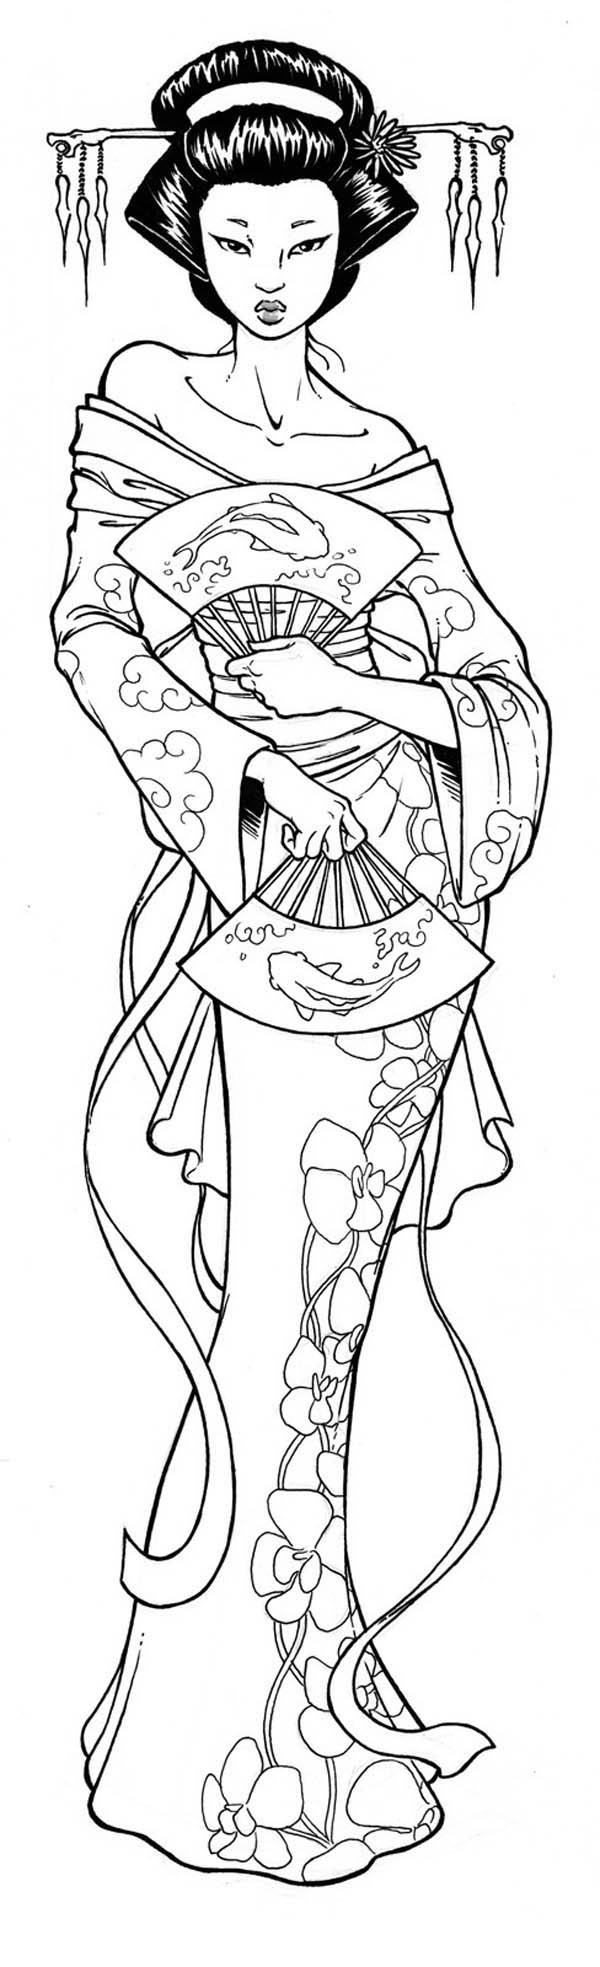 japanese coloring sheets japan coloring pages to download and print for free japanese sheets coloring 1 1